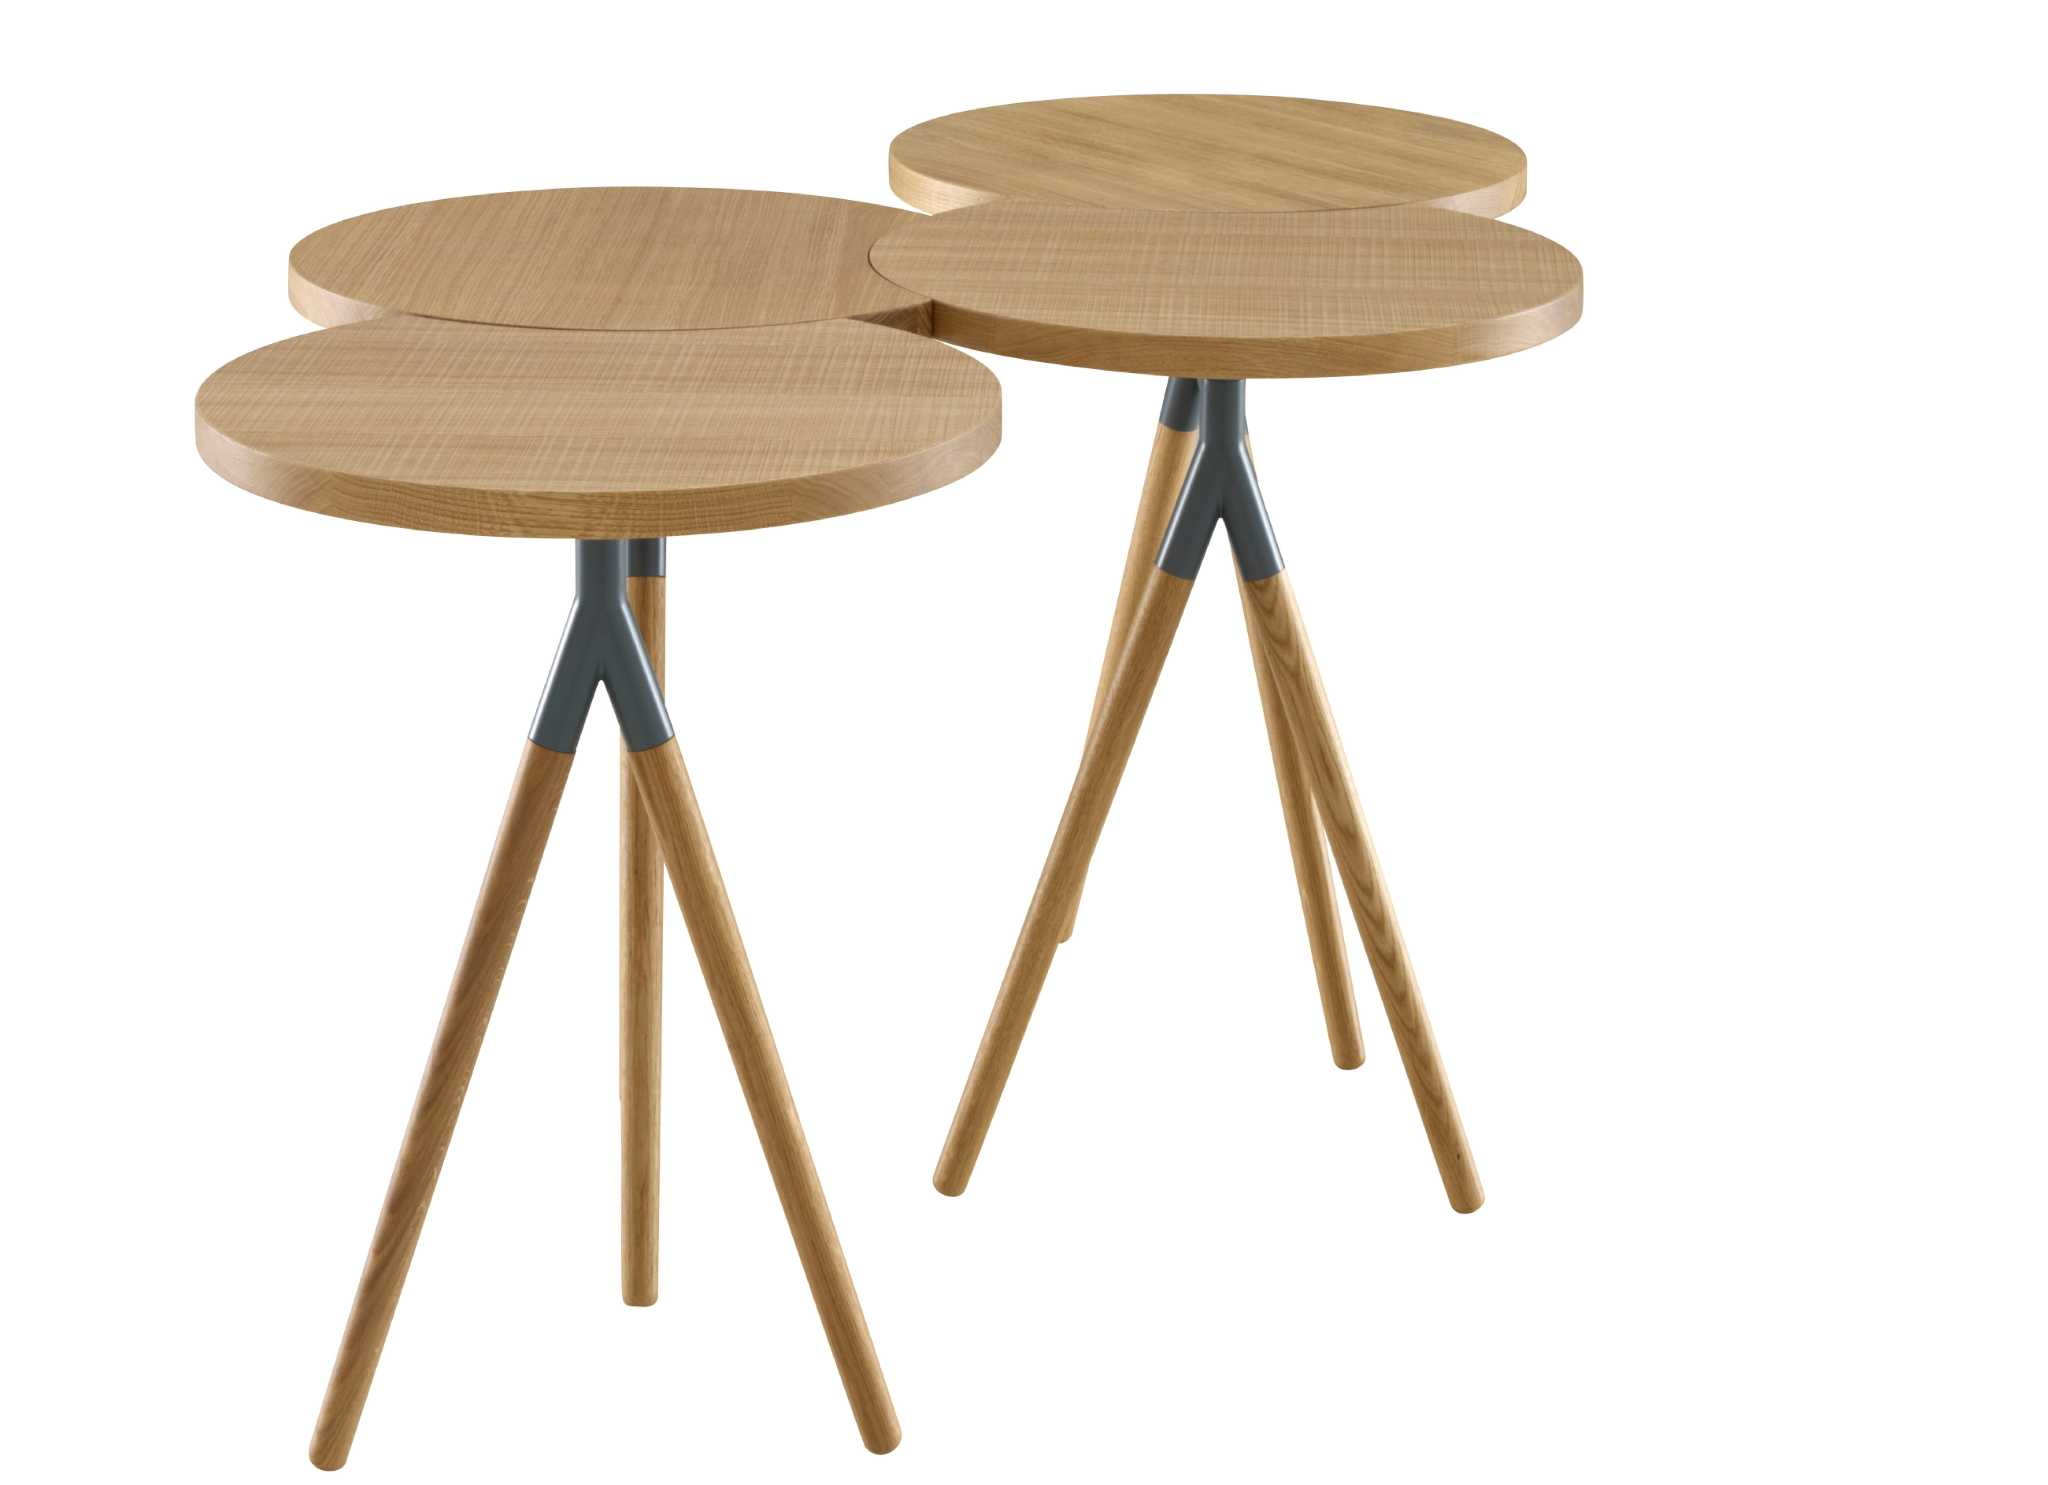 Convertible Dining Tables Help Save Space Houstonchroniclecom